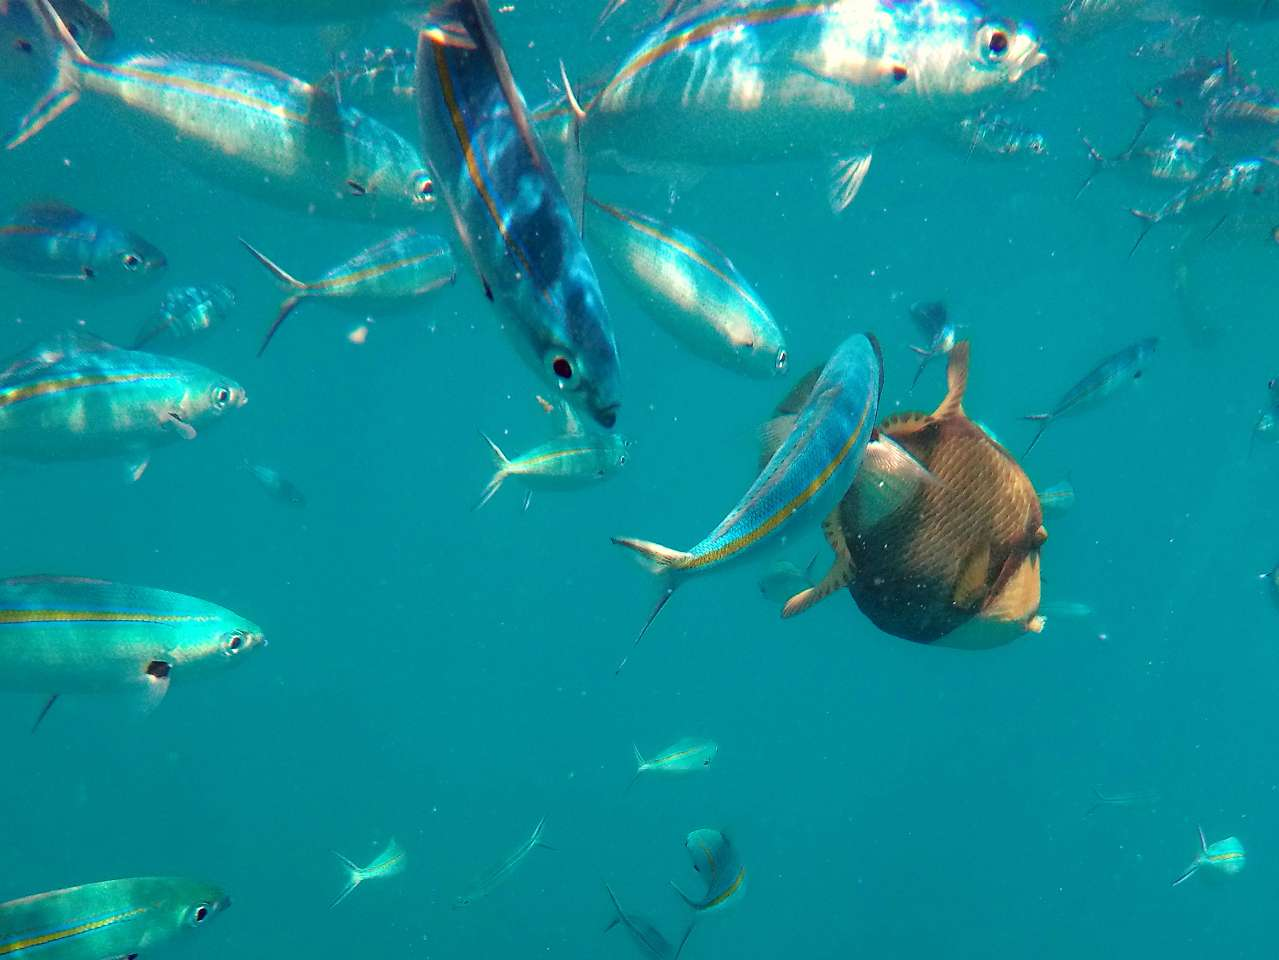 Colourful fish in the warm waters at Beachcomber Island on this great tour on the thunder jet in Fiji